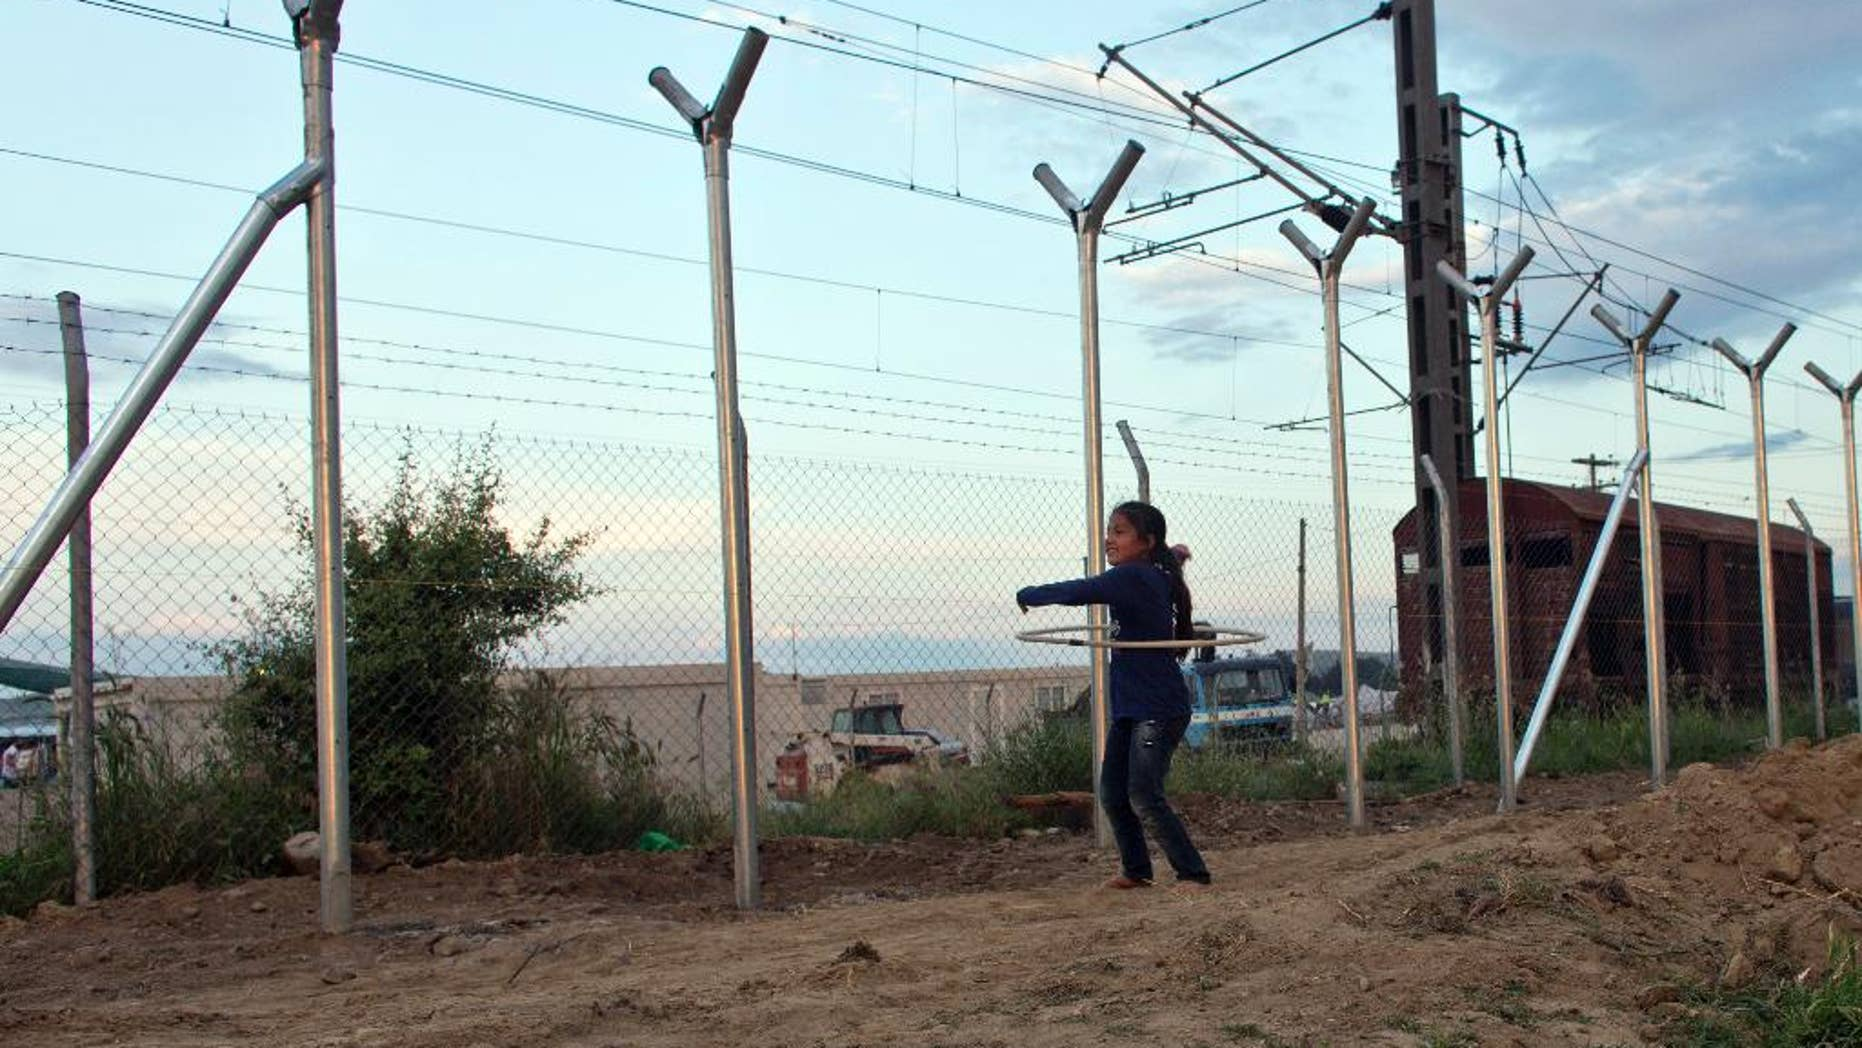 A girl plays next to the fence on the Macedonian border in Idomeni, Greece, Thursday, May 19, 2016.  Thousands of stranded refugees and migrants have camped in Idomeni for months after the border was closed. (AP Photo/Darko Bandic)